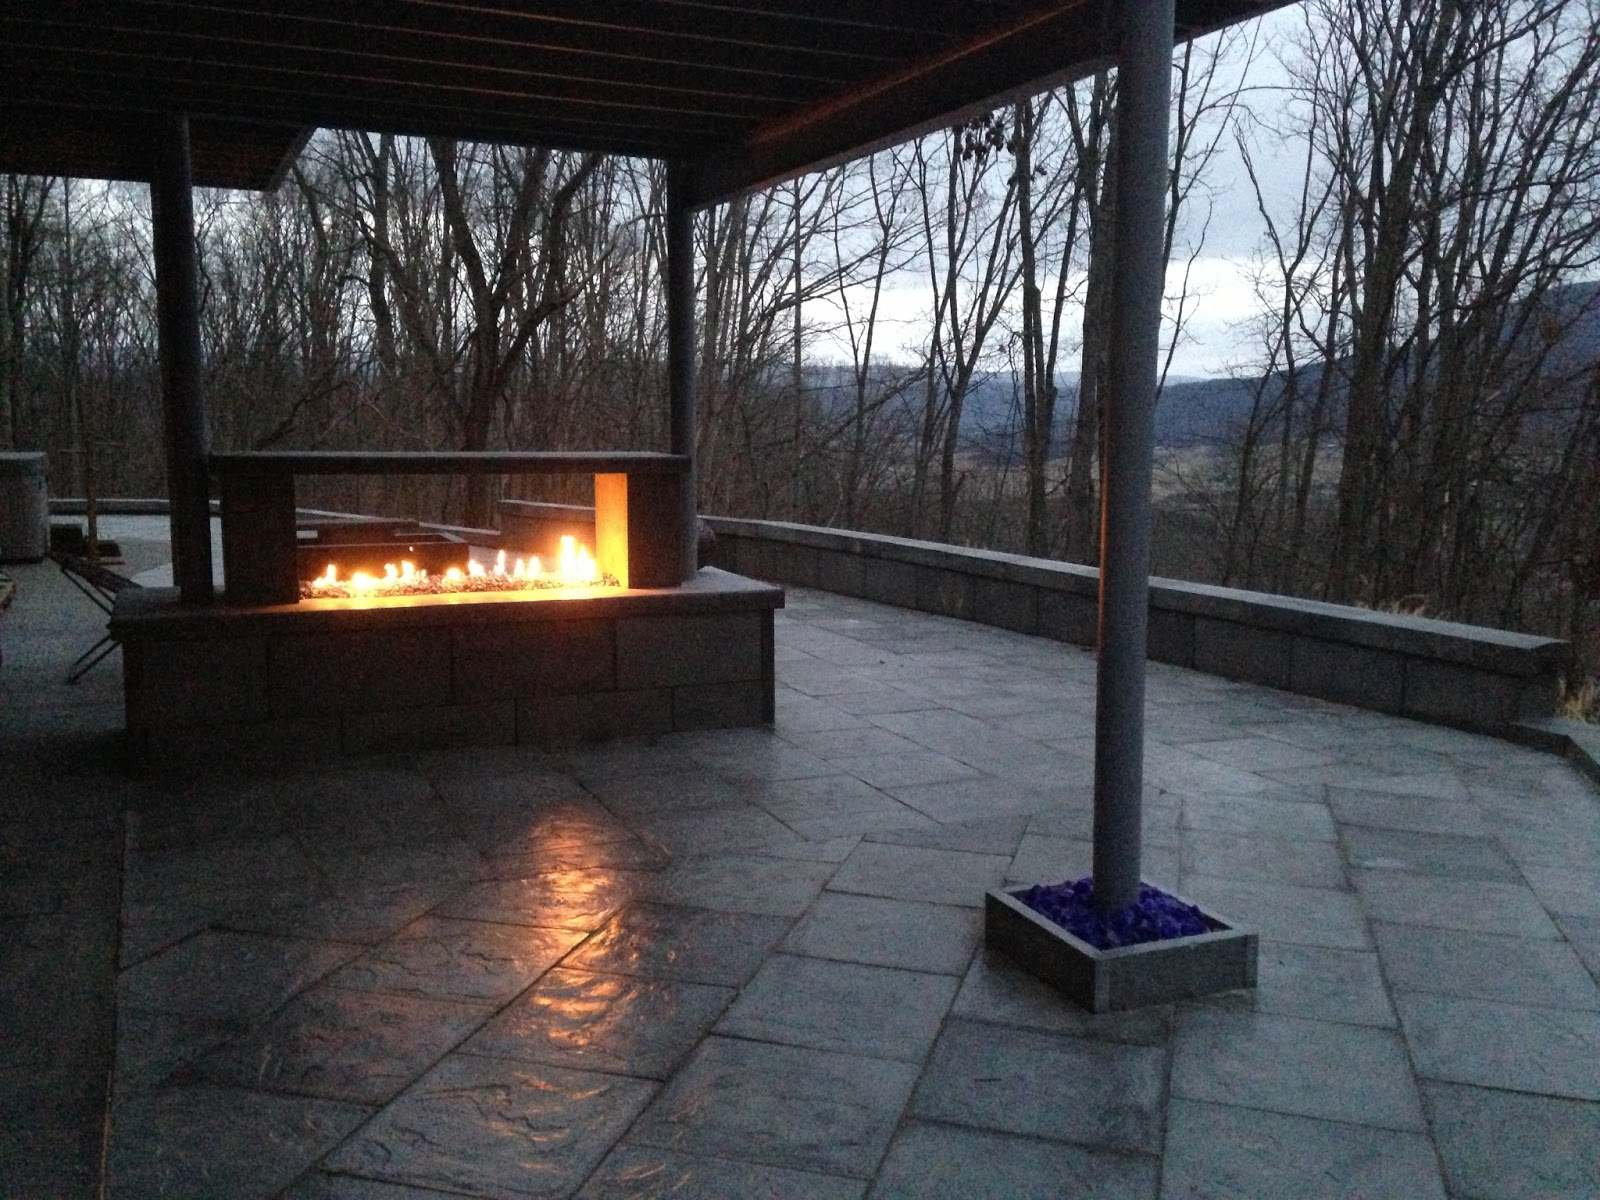 builderscrete cellulose products a see through outdoor fireplace